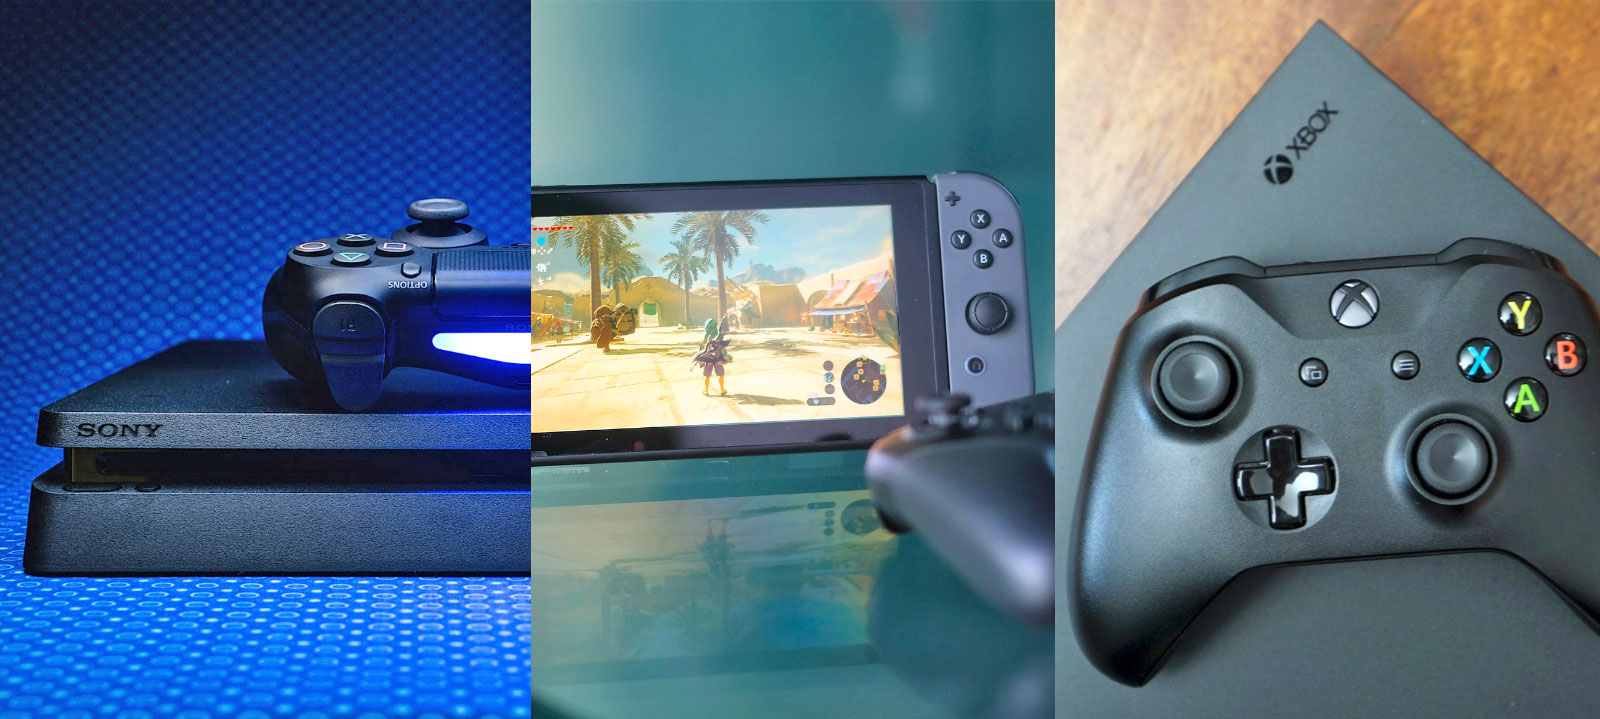 marketing video game console and shoppers Video game 911 is the leader in playstation video game console repairs with emphasis on the ps4 pro and ps4 systems since playstation 3 came to america in the late '90s, we have specialized in repairing all sorts of issues with every generation of these consoles.